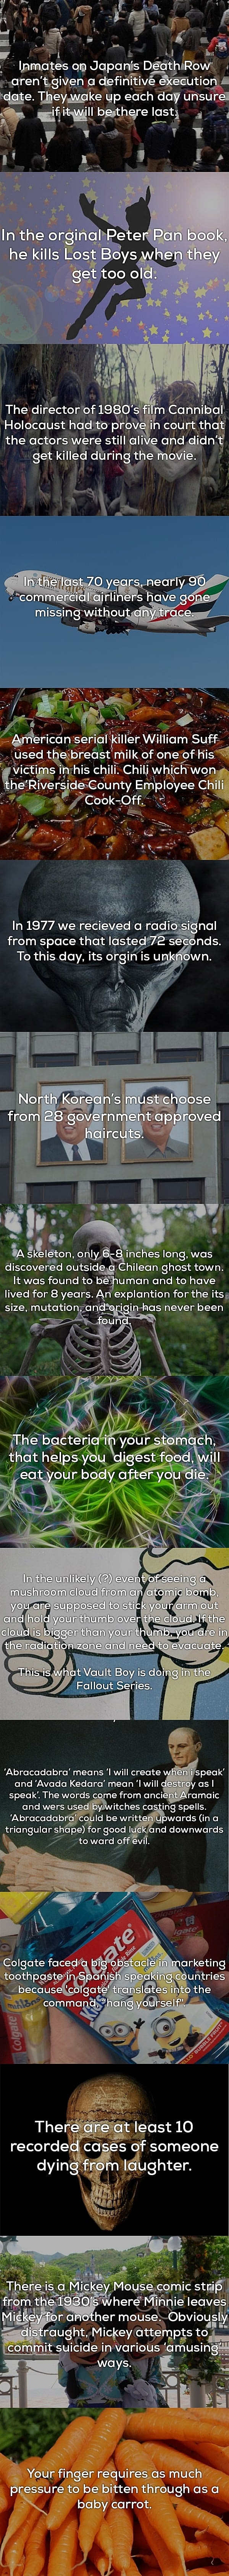 Some interesting and creepy facts